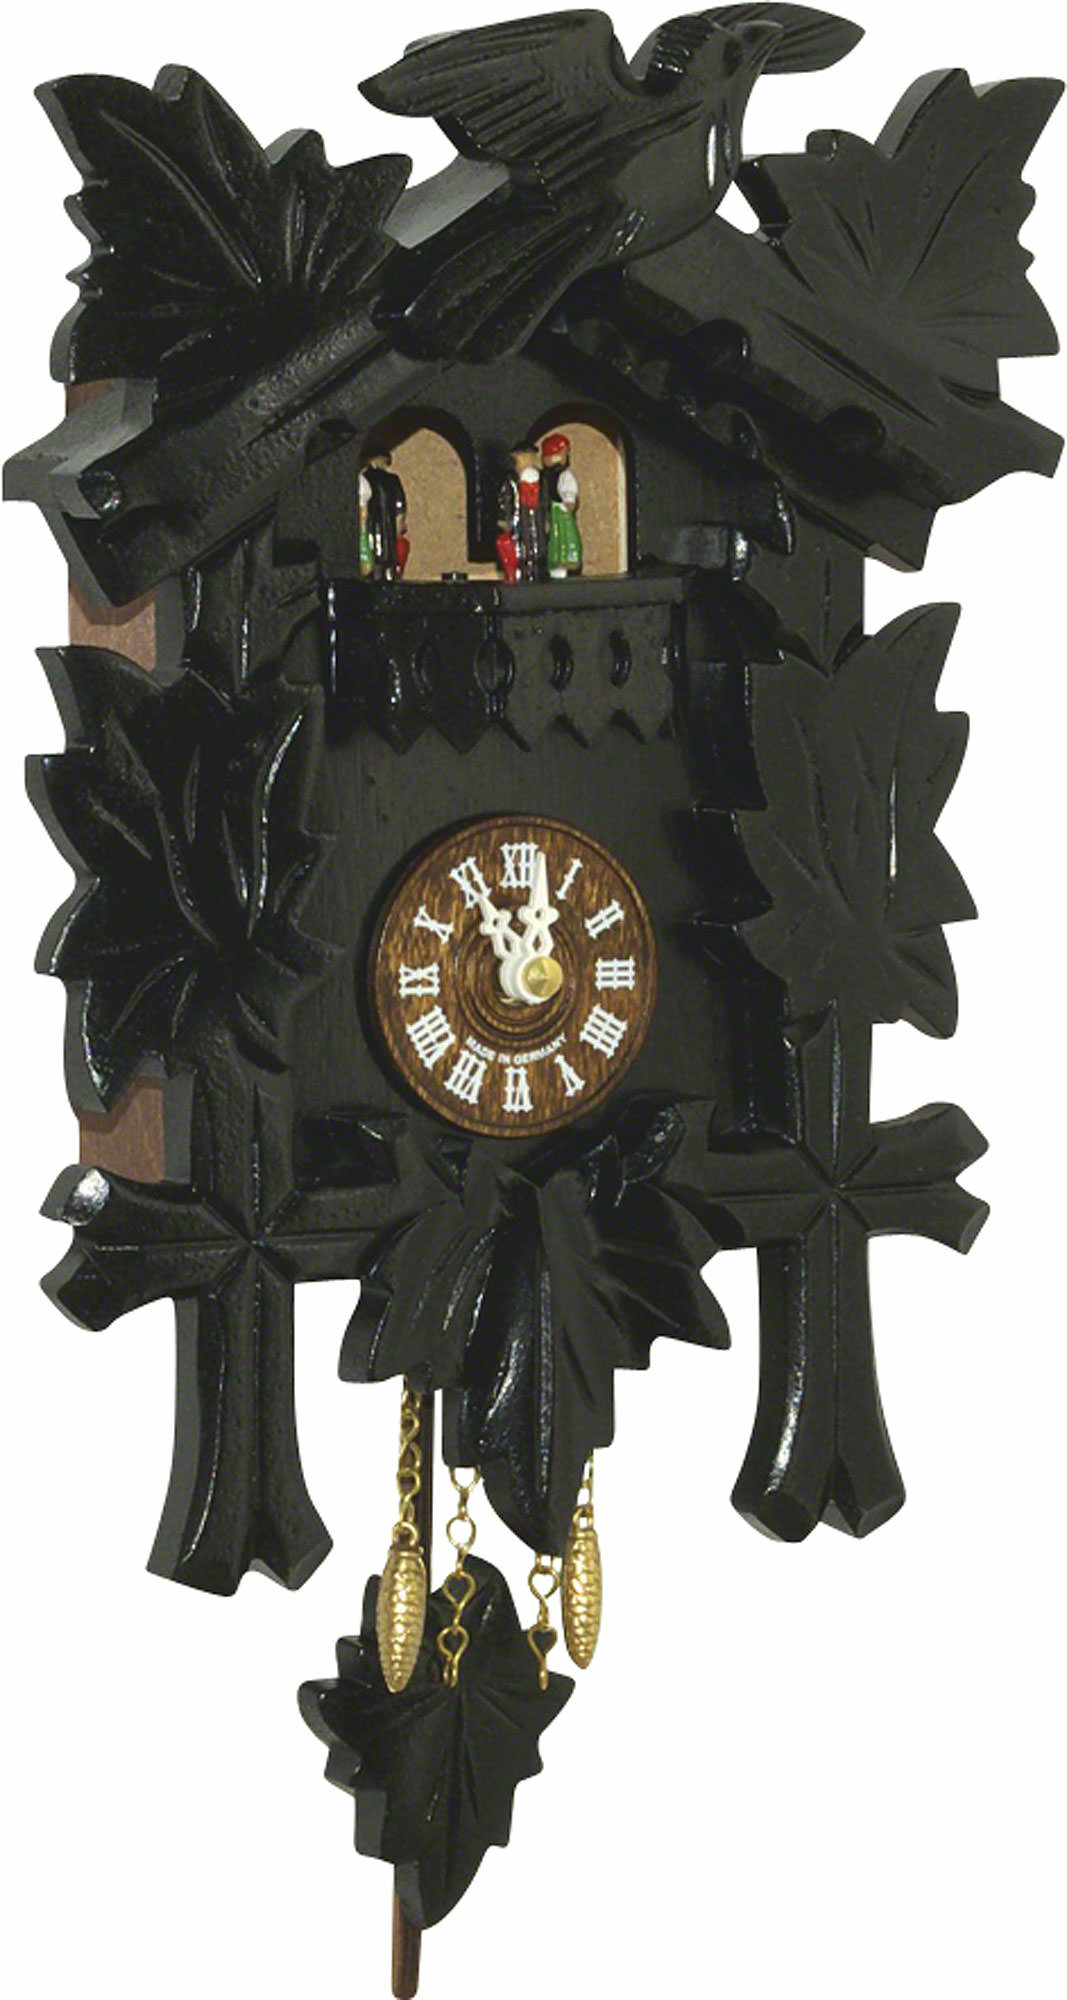 Cuckoo clock quartz movement black forest pendulum clock style 24cm by trenkle uhren 2018 pq - Cuckoo clock pendulum ...